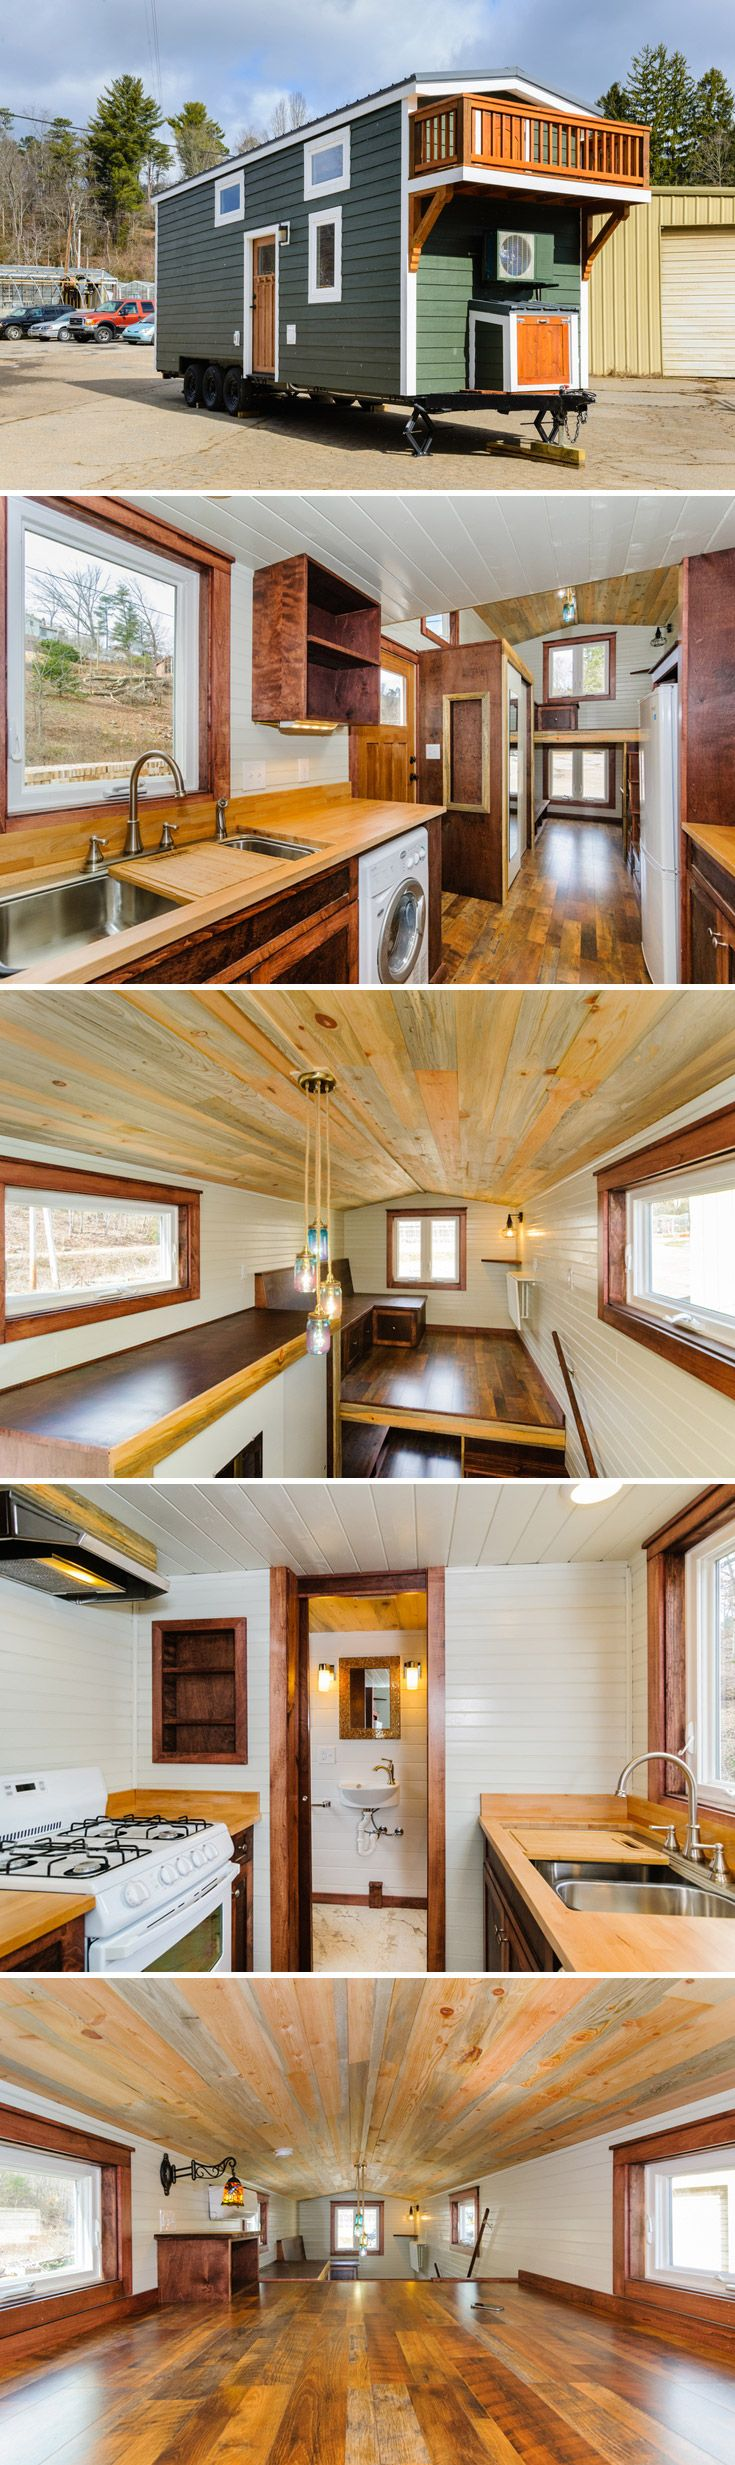 This 208 sq.ft. tiny house on wheels includes a split level loft, balcony, and -- not something we can say often in a tiny house description -- a walk-in closet! The kitchen has a 9.2 cubic foot refrigeratorand4 burner range with oven.